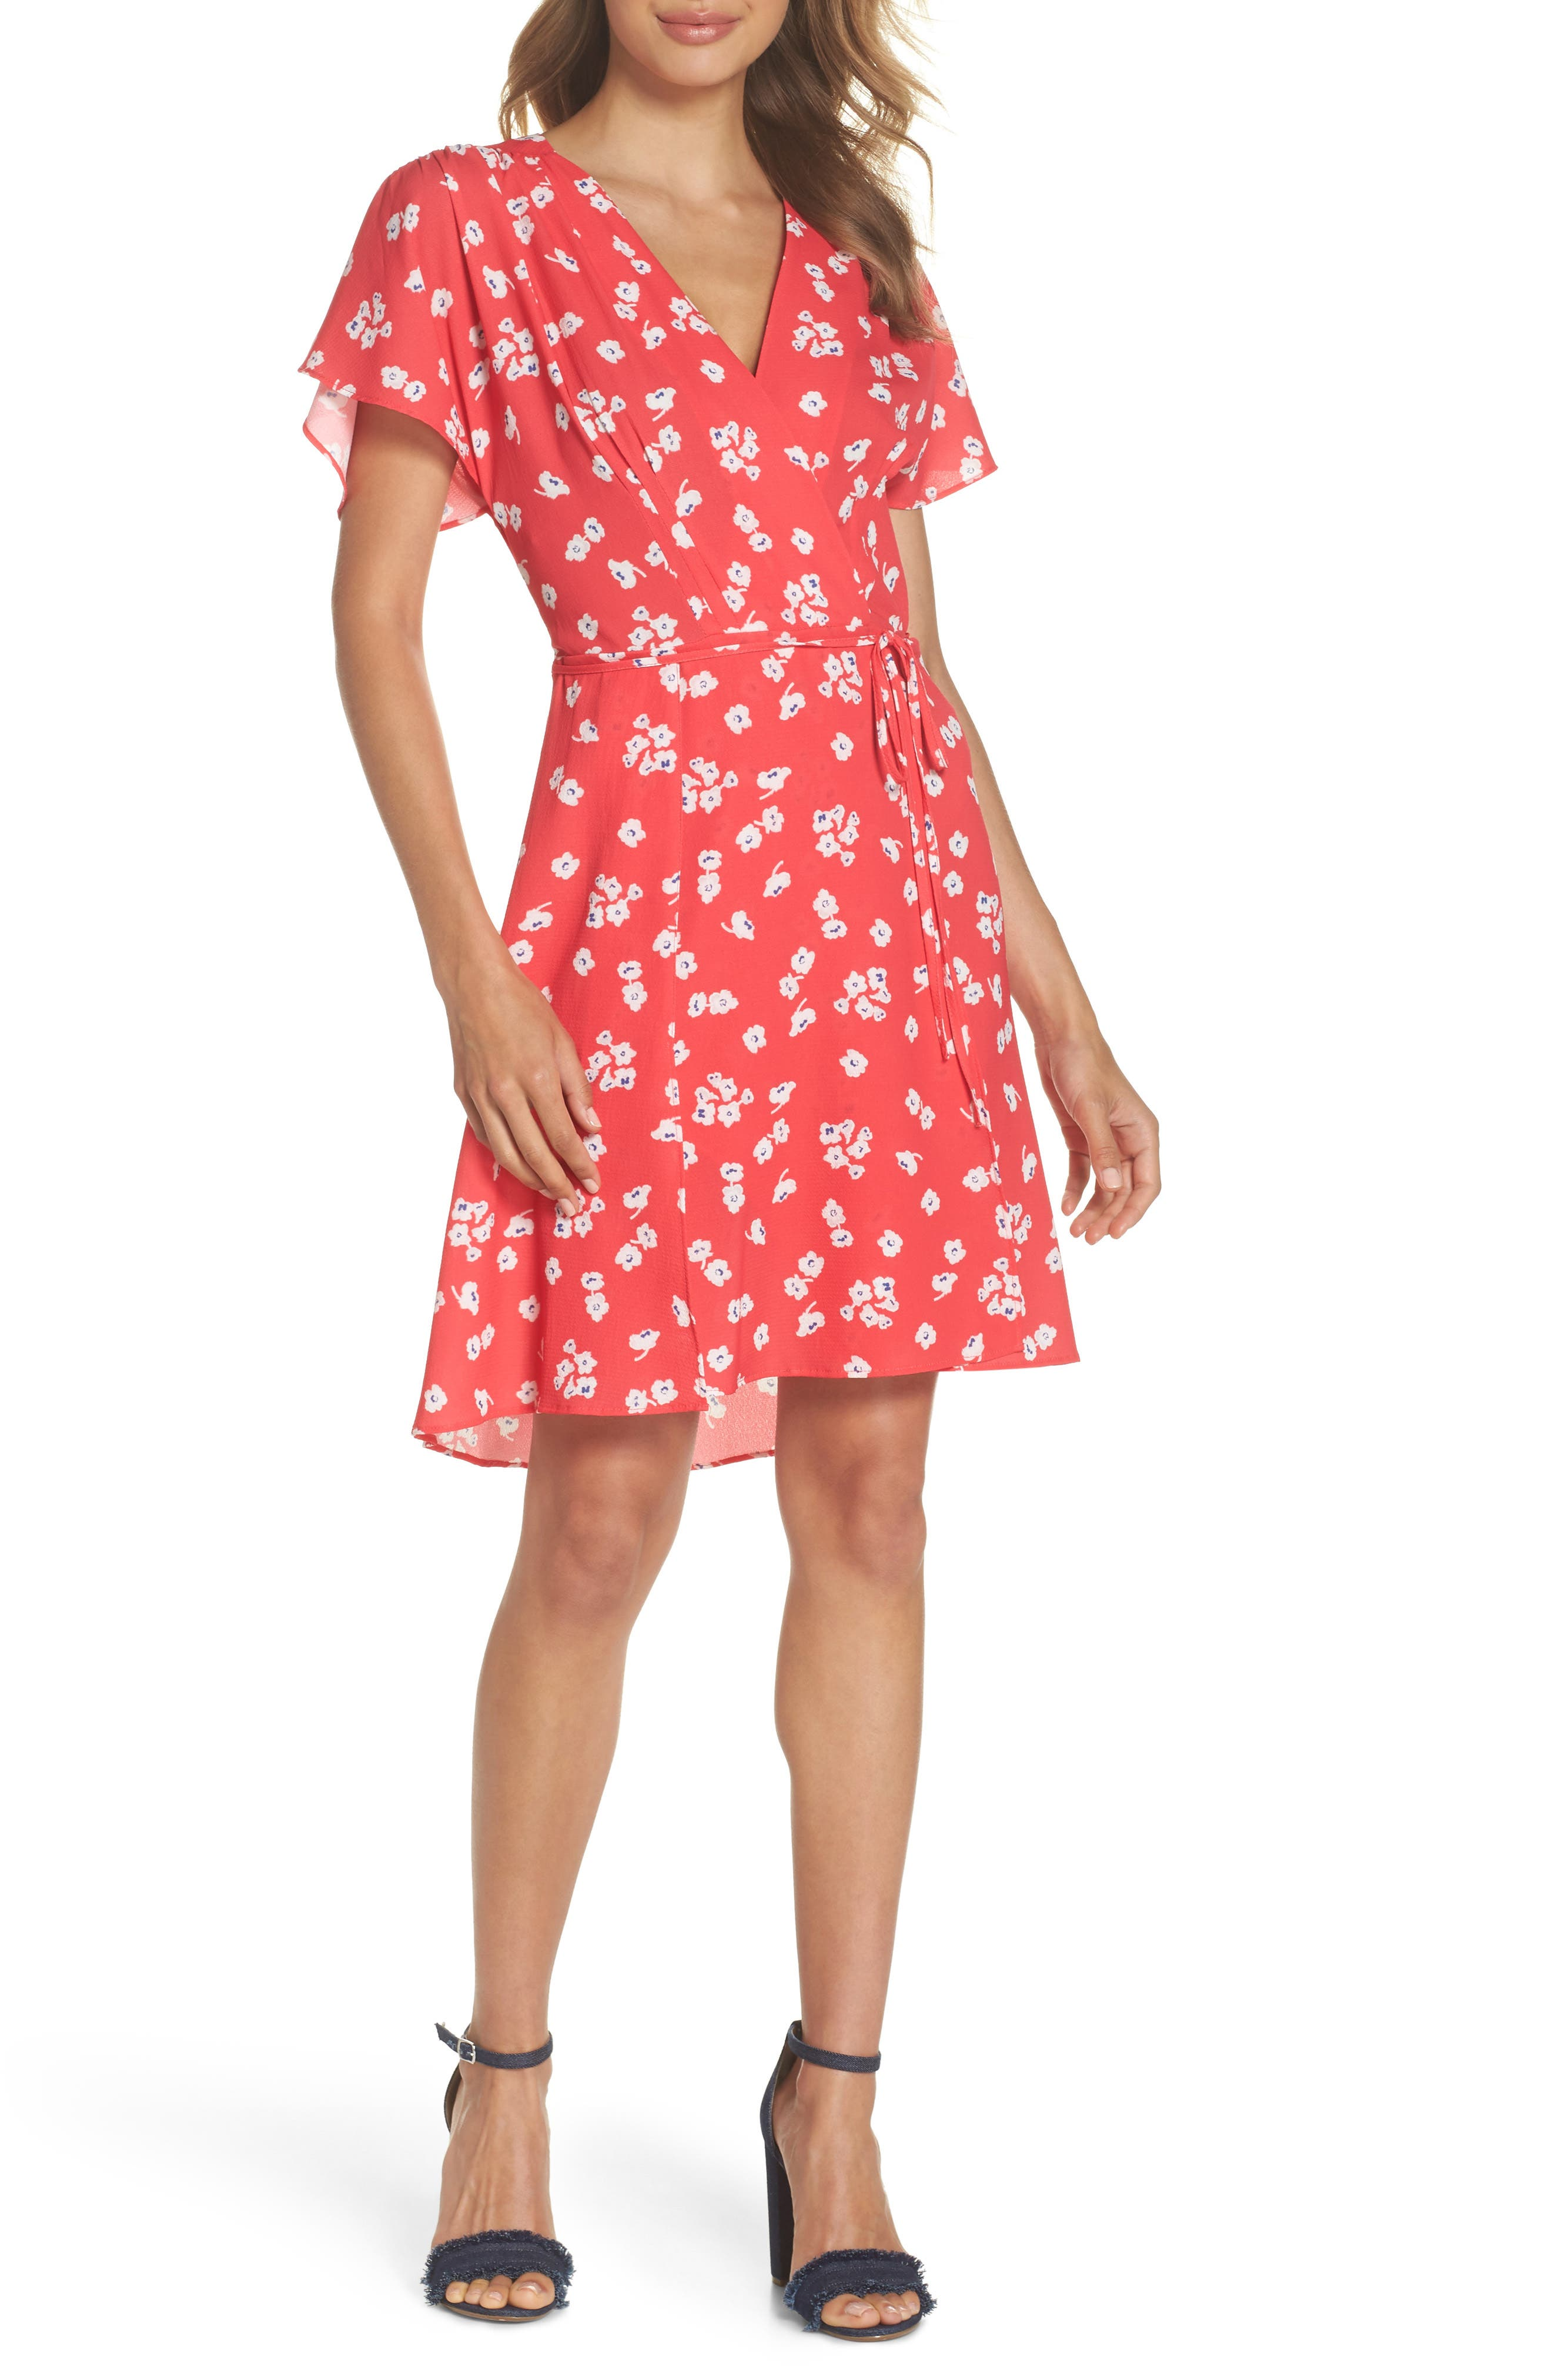 French Connection Verona Floral Print Faux Wrap Dress, Pink